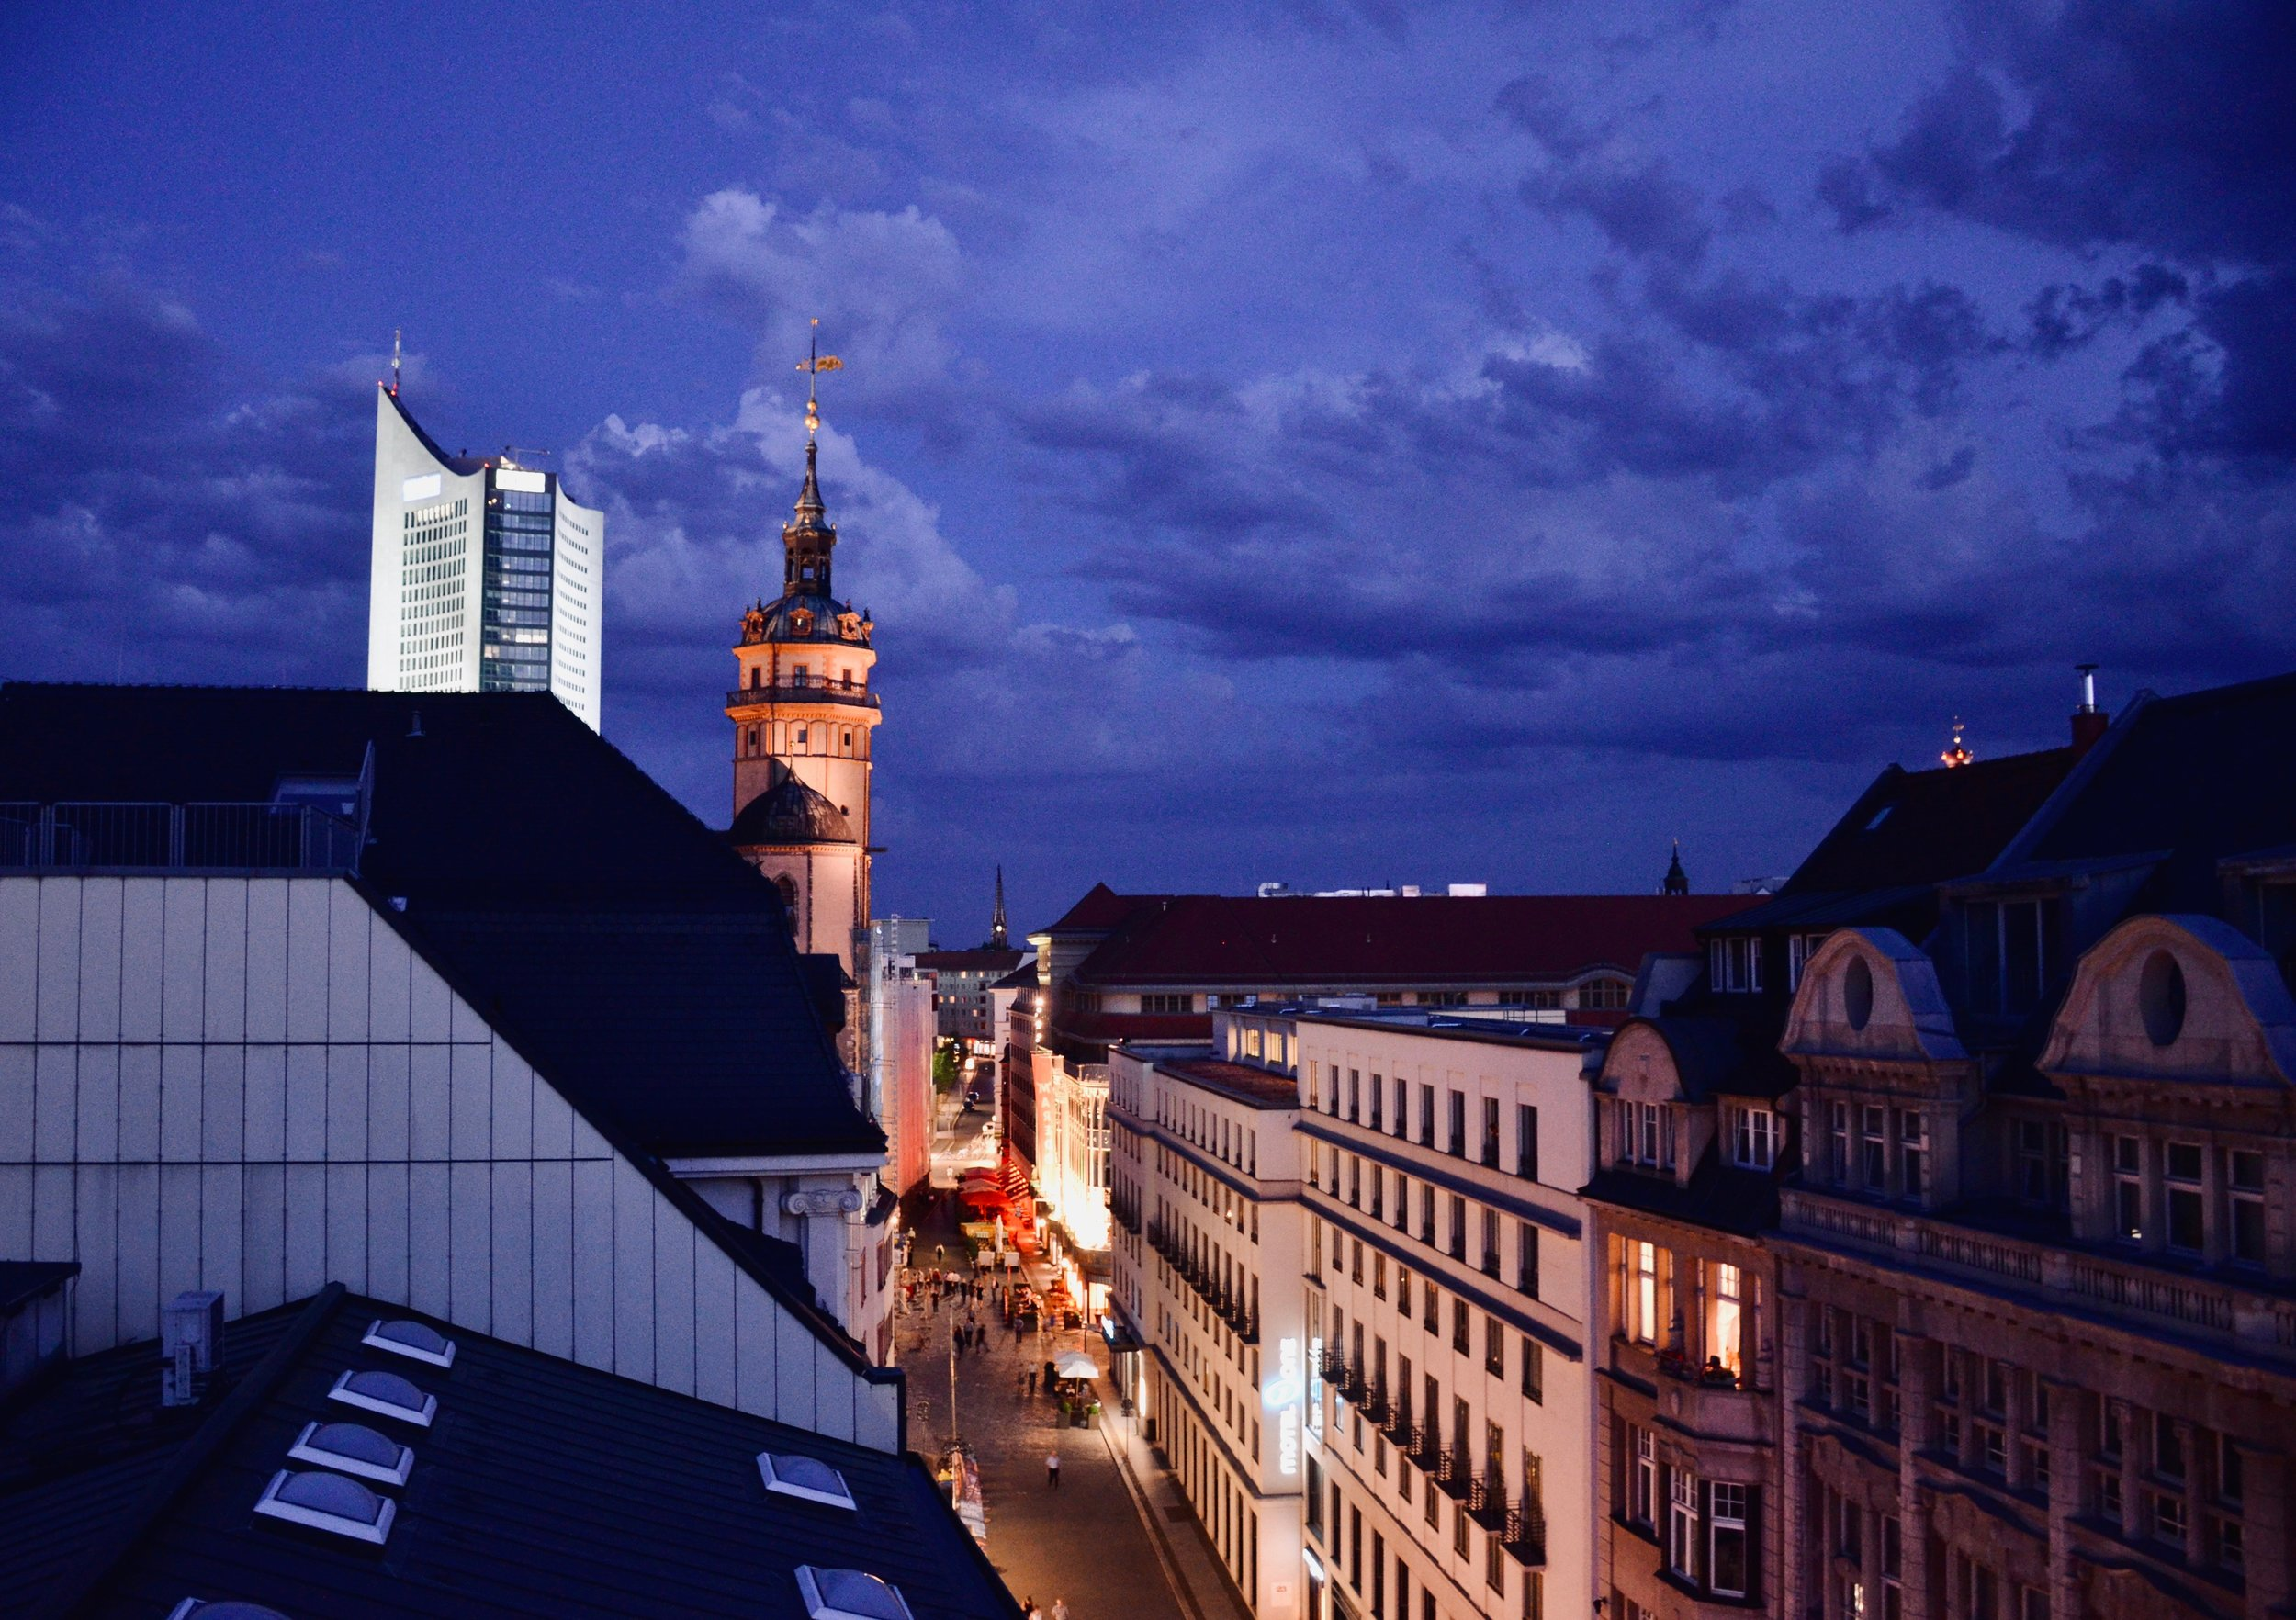 A stunning evening on the roof top, with the spire of Nikolaikirche, Leipzig.